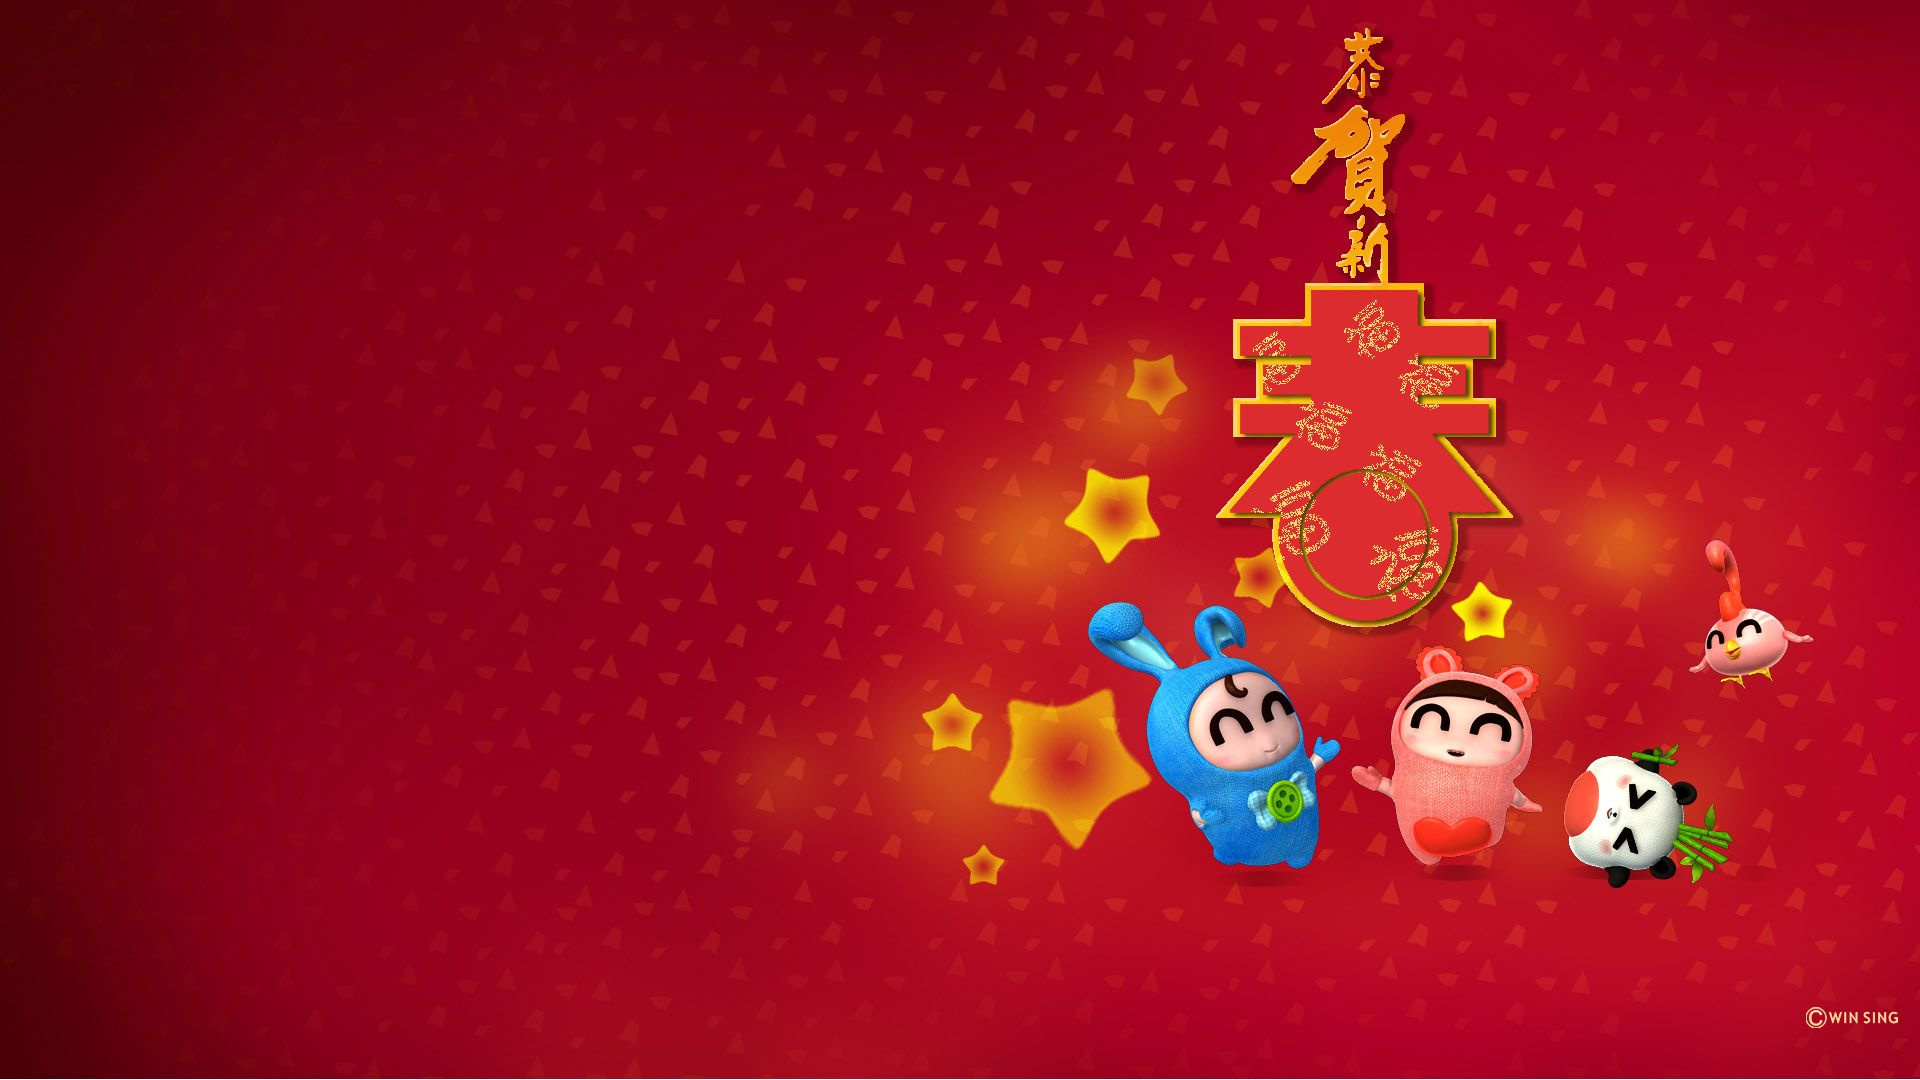 Chinese New Year 2014 Best Wallpapers 1920x1080